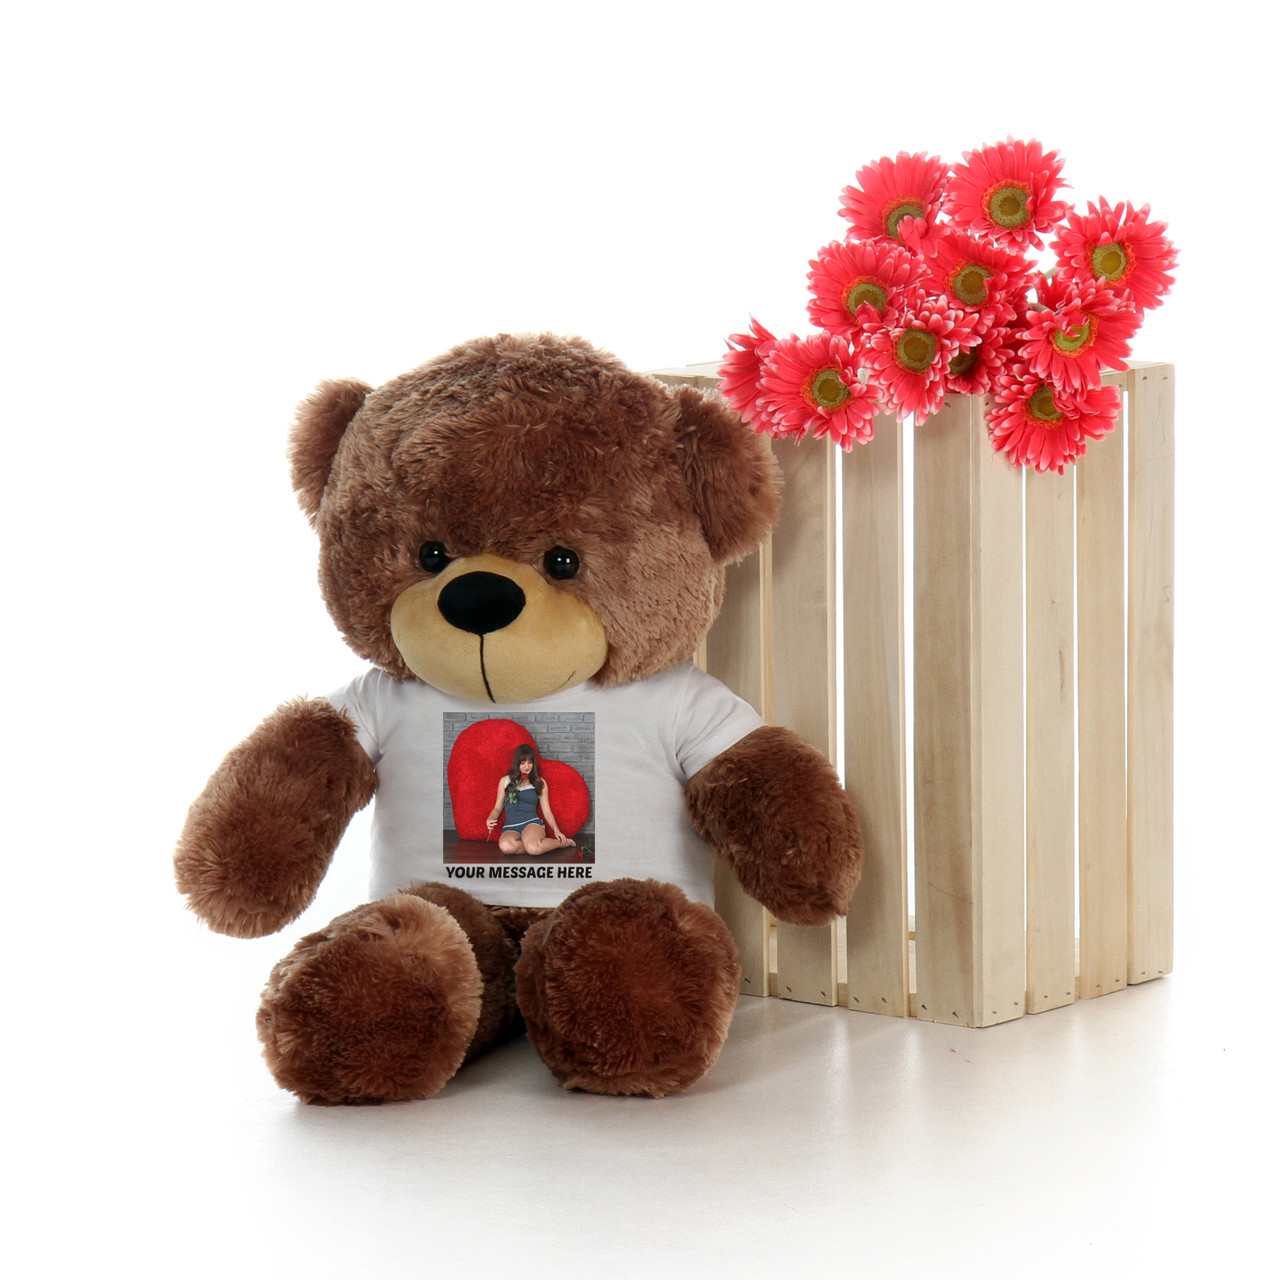 2 Foot Mocha Brown Teddy Bear with Personalized T-shirt